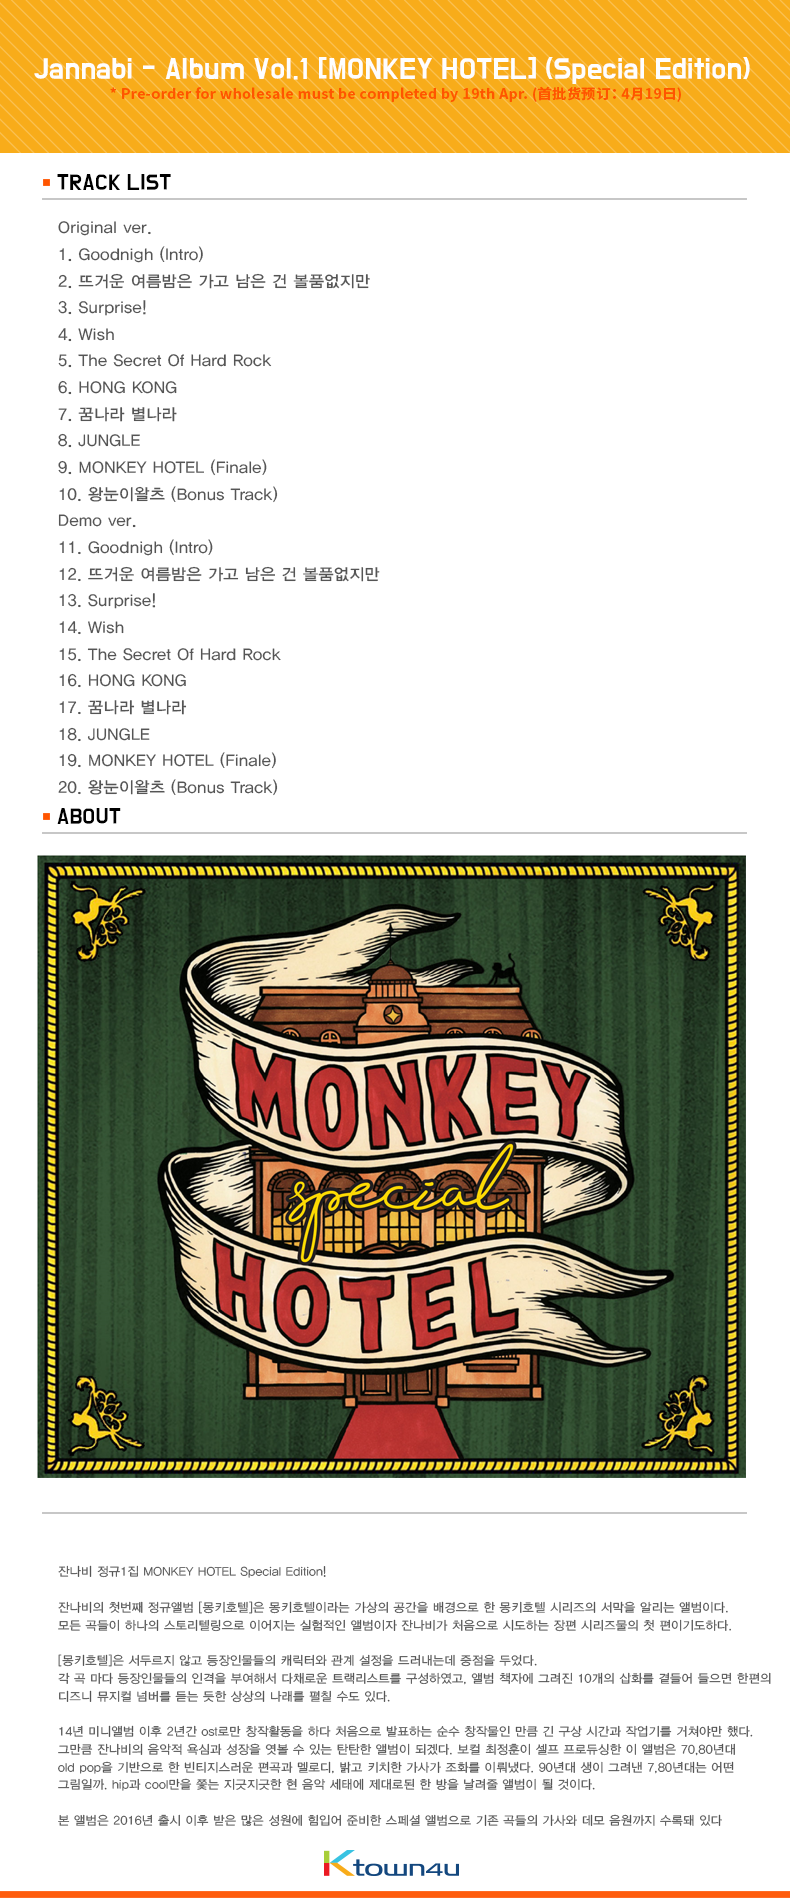 Jannabi - Album Vol.1 [MONKEY HOTEL] (Special Edition)